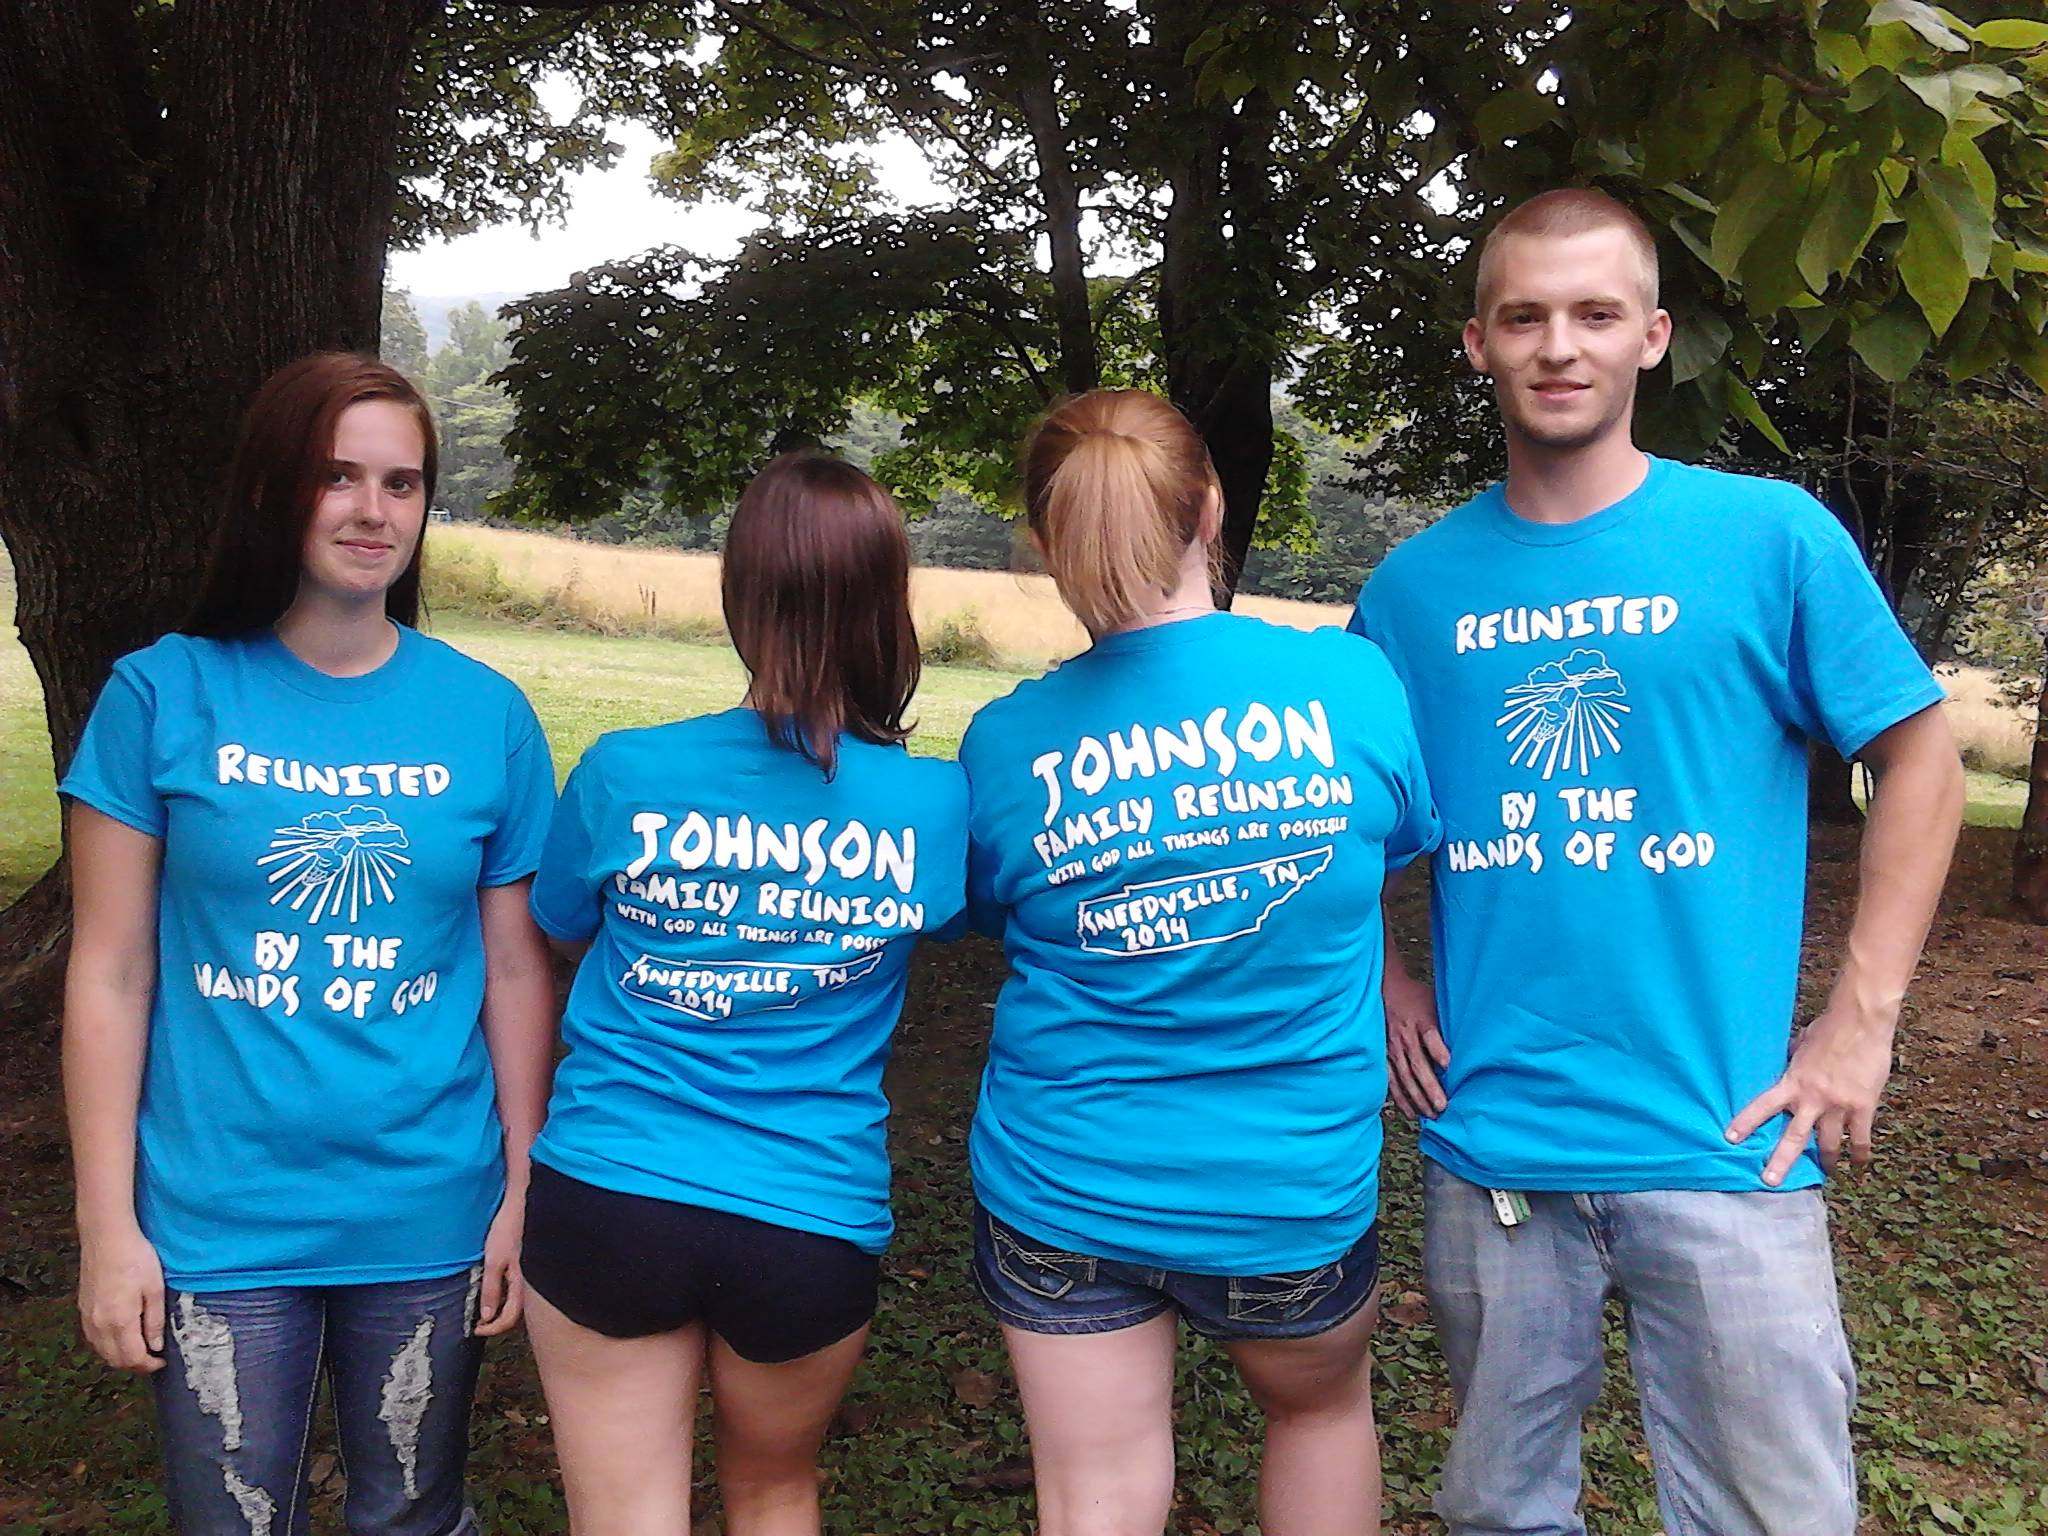 johnson family reunion t shirt photo - Family Reunion Shirt Design Ideas